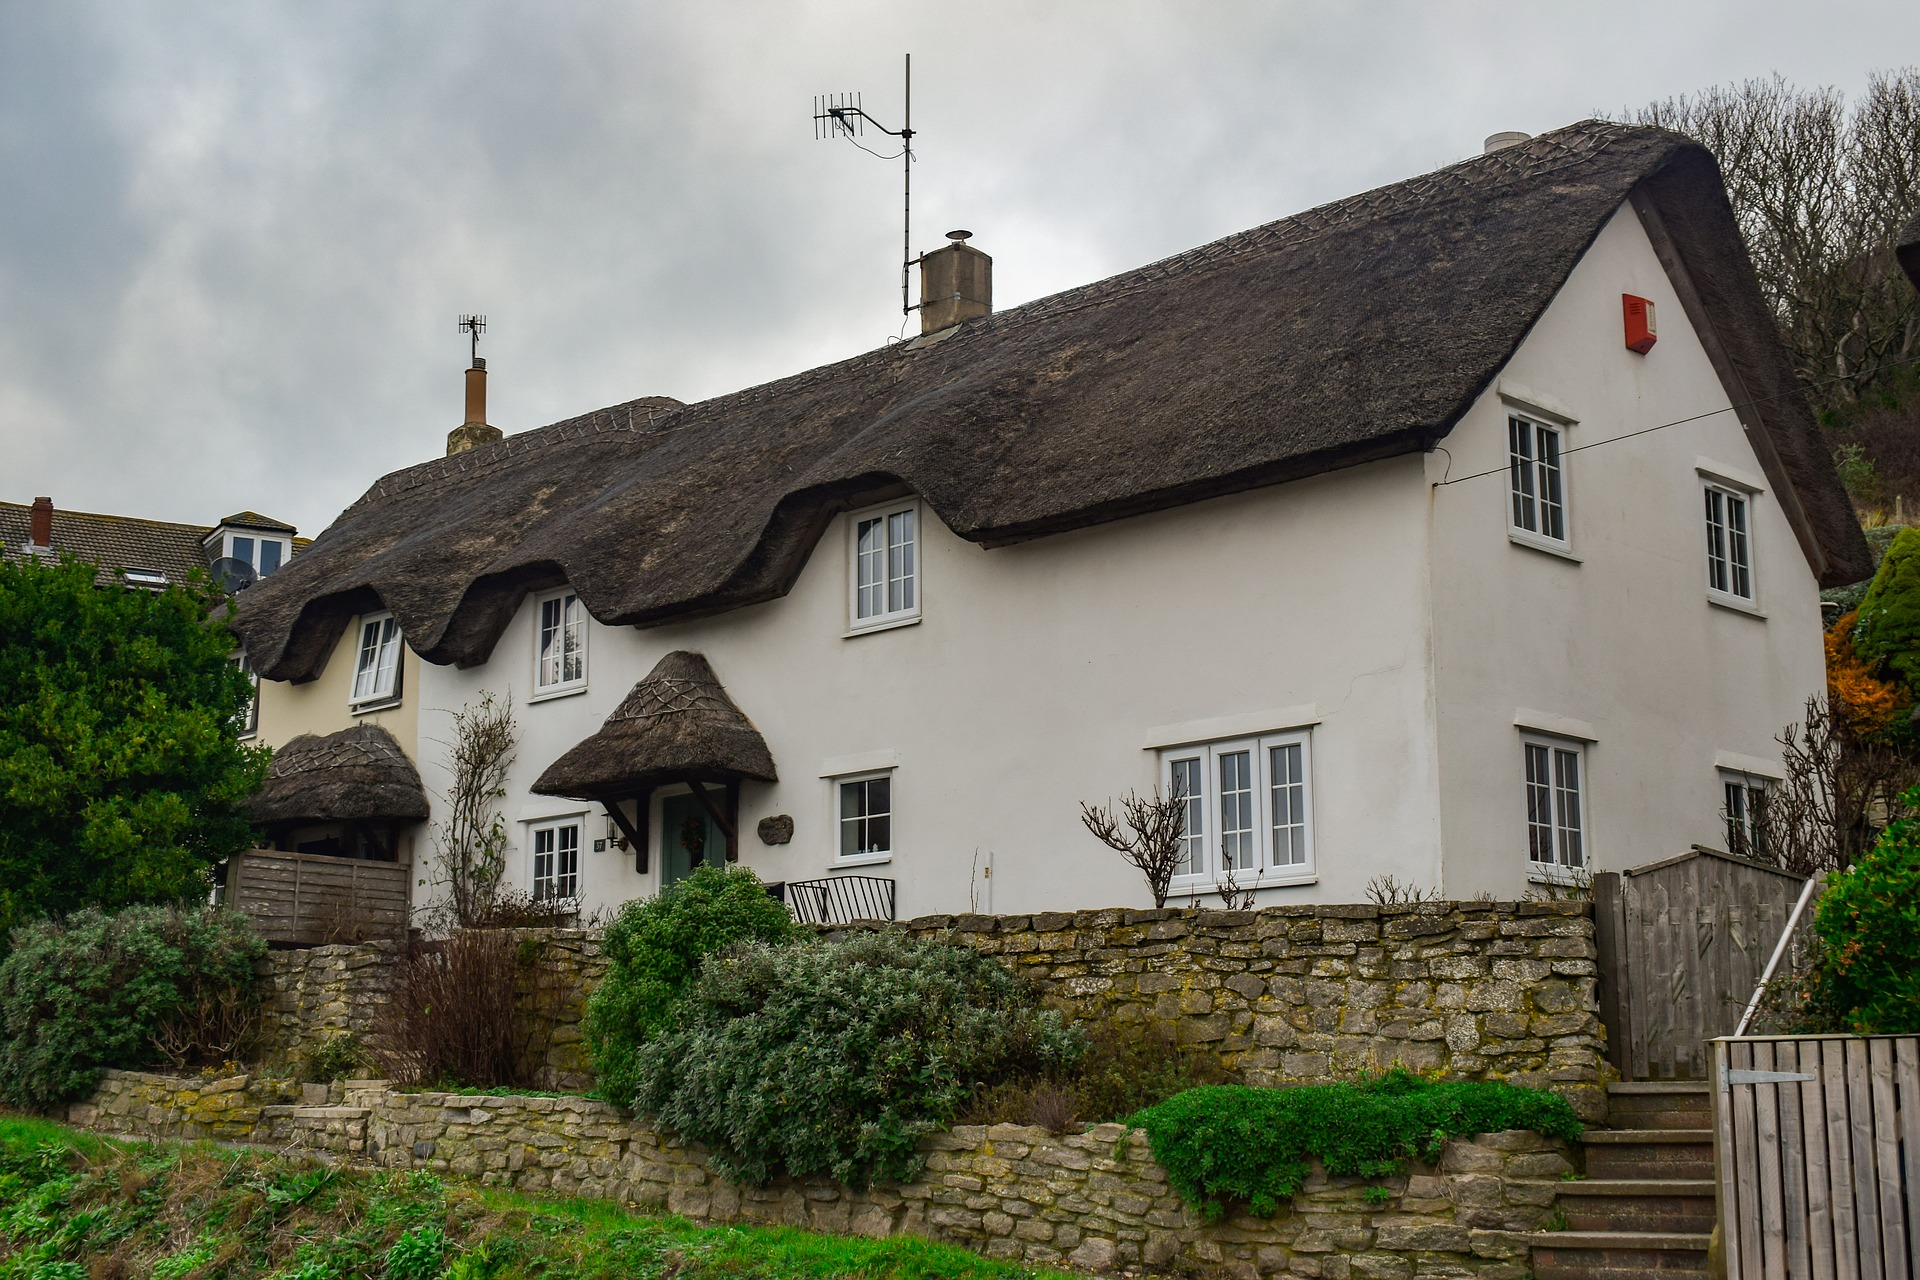 Photo of a rural cottage